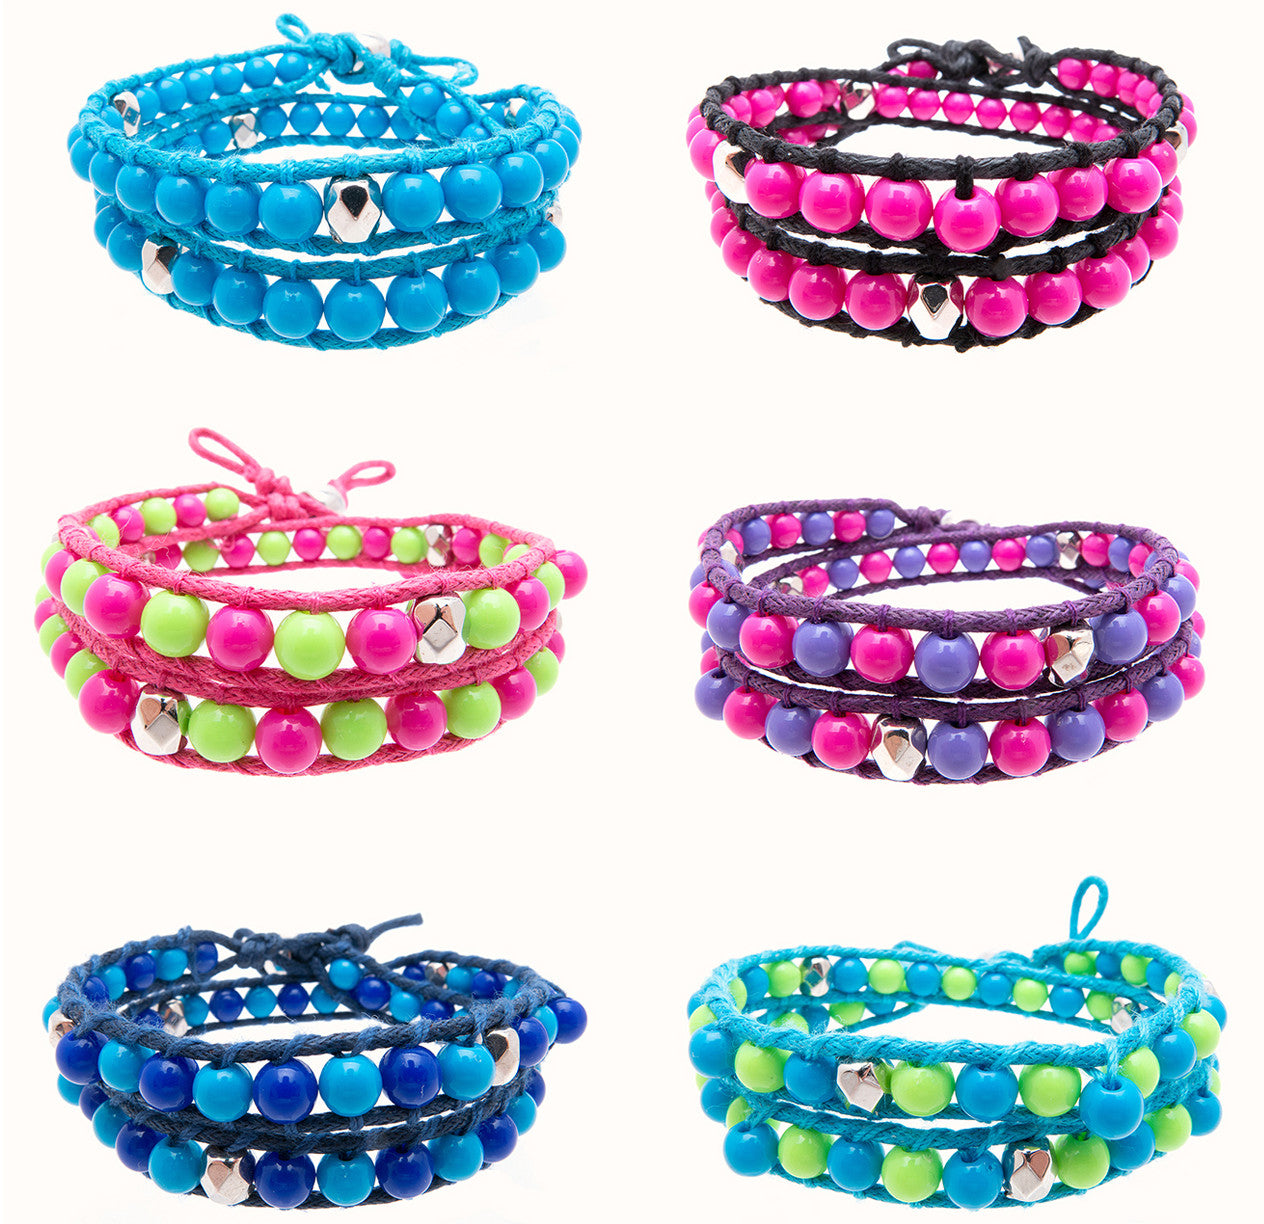 RFC927B Wrap Around Bracelet with 6mm colored & silver faceted beads - 12 Pcs Pack Unit